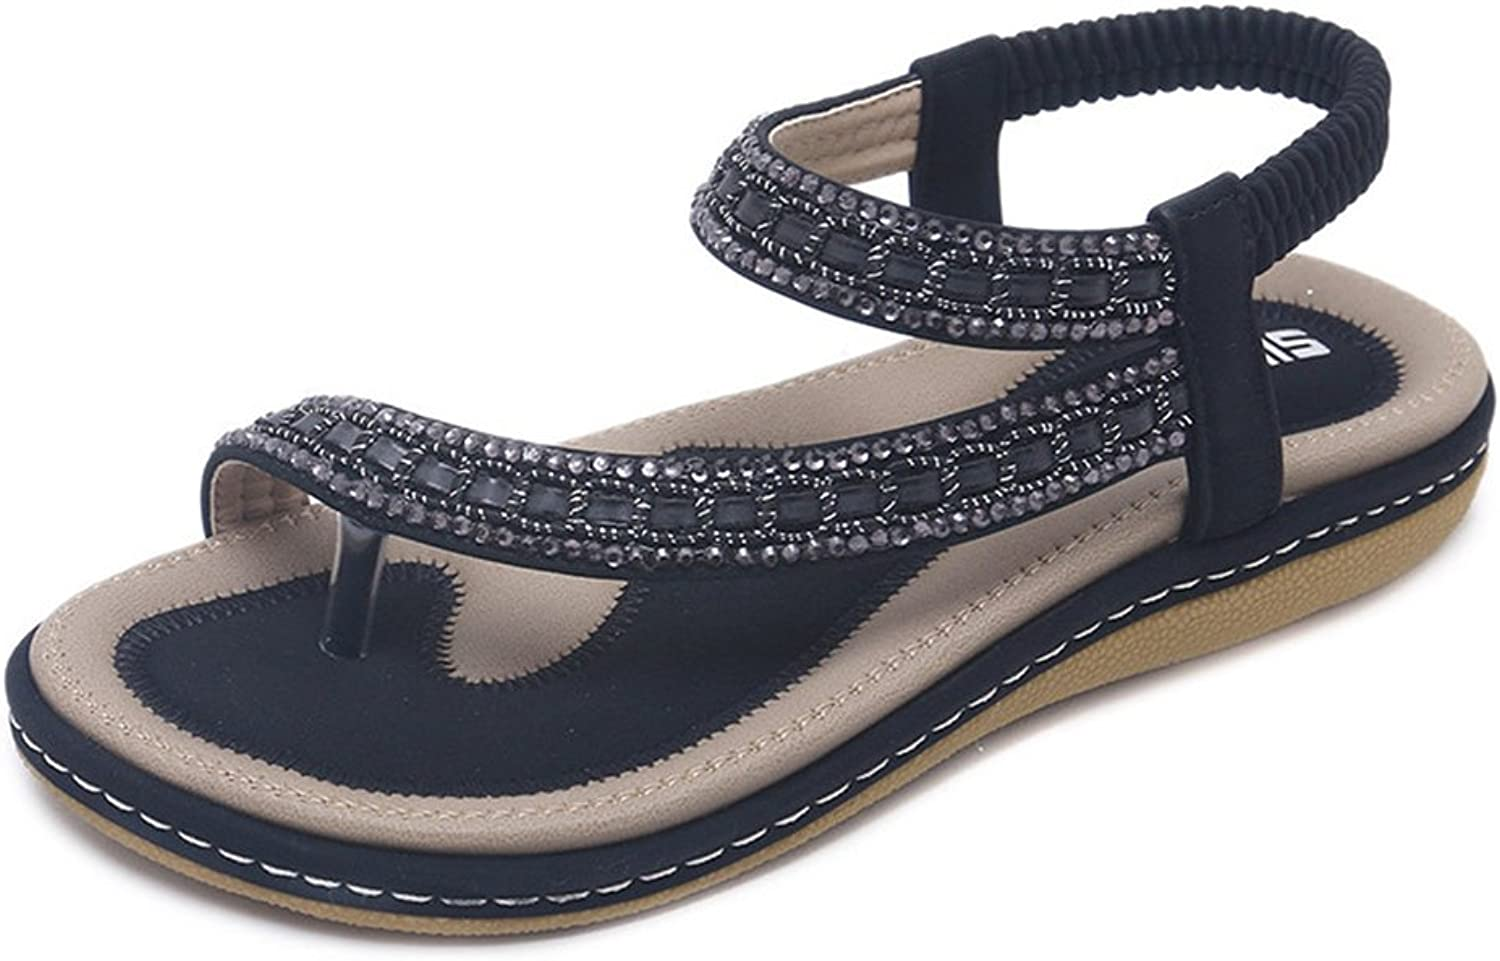 Navoku Women's Casual Leather Flats Sandle Thong Sandals